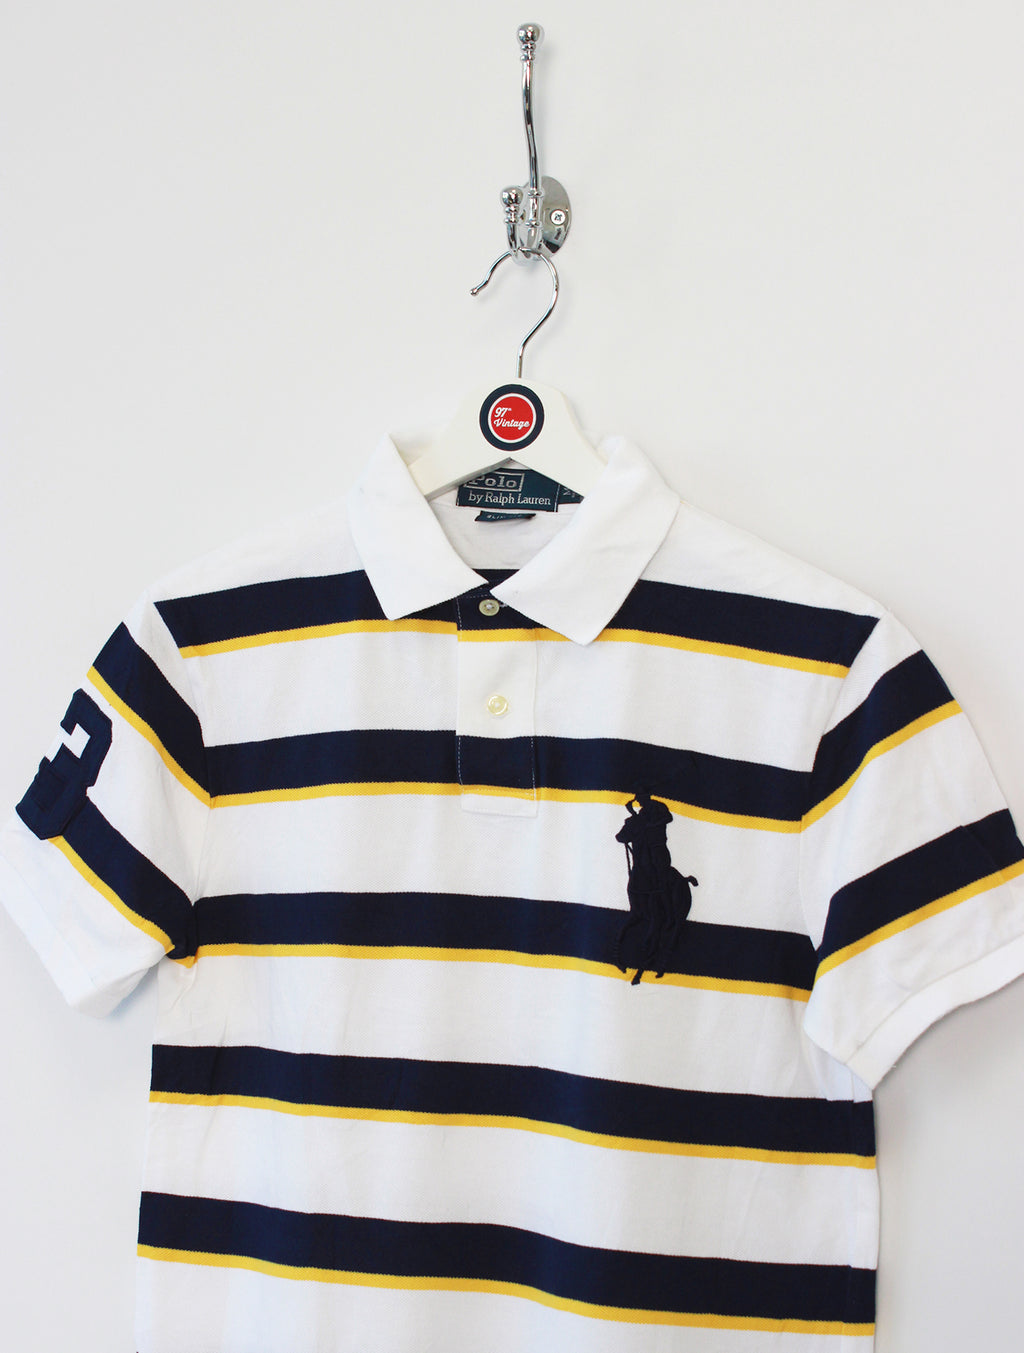 Ralph Lauren Polo Shirt (S/M)